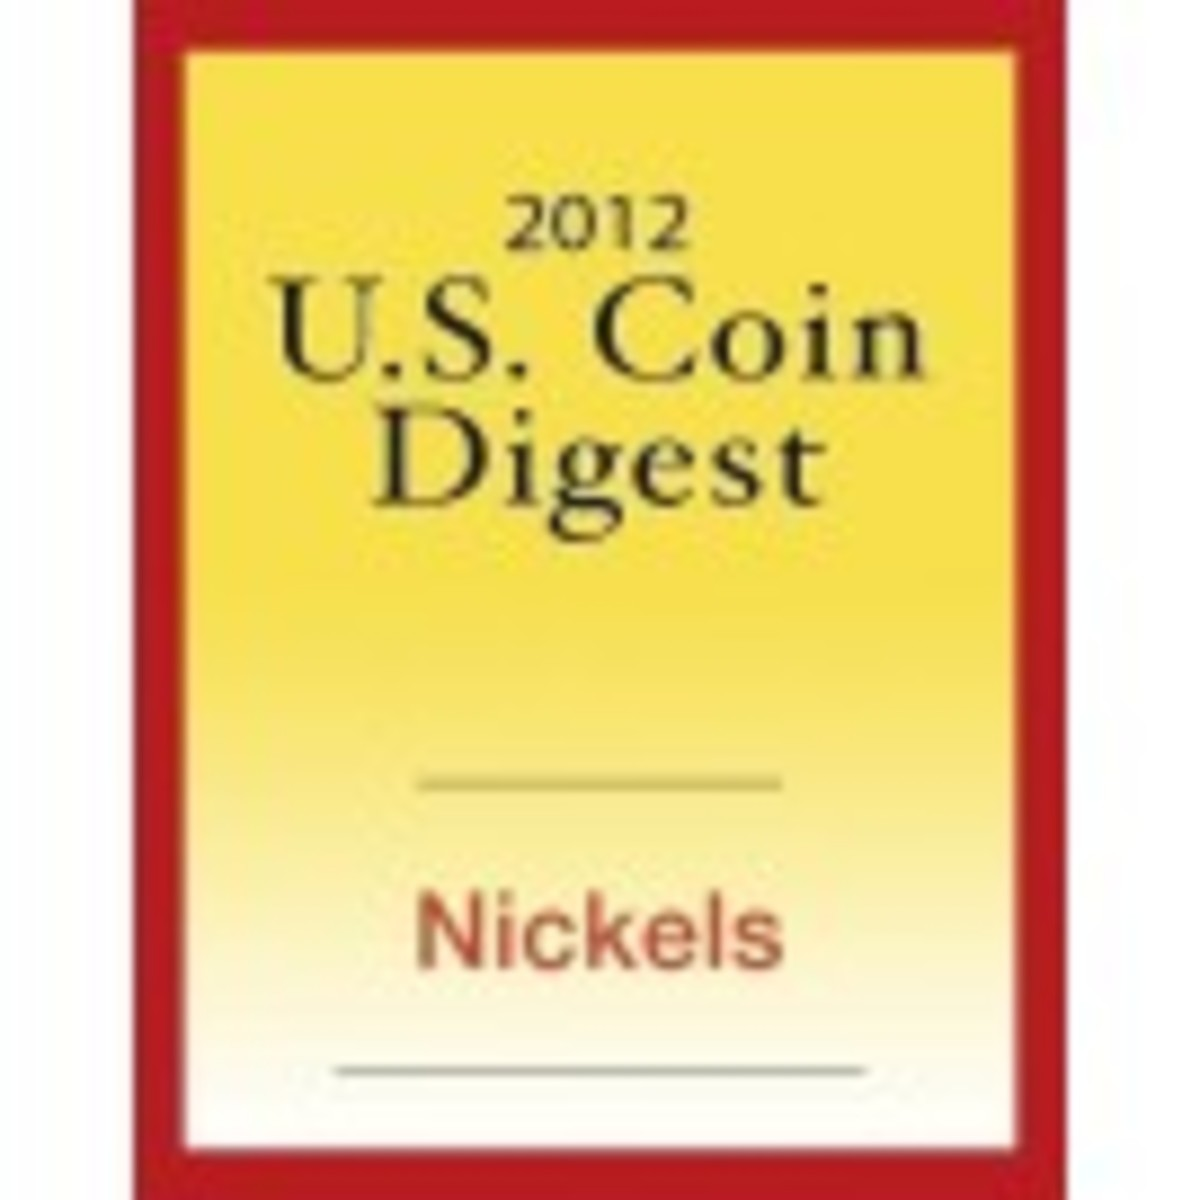 2012 U.S. Coin Digest: Nickels